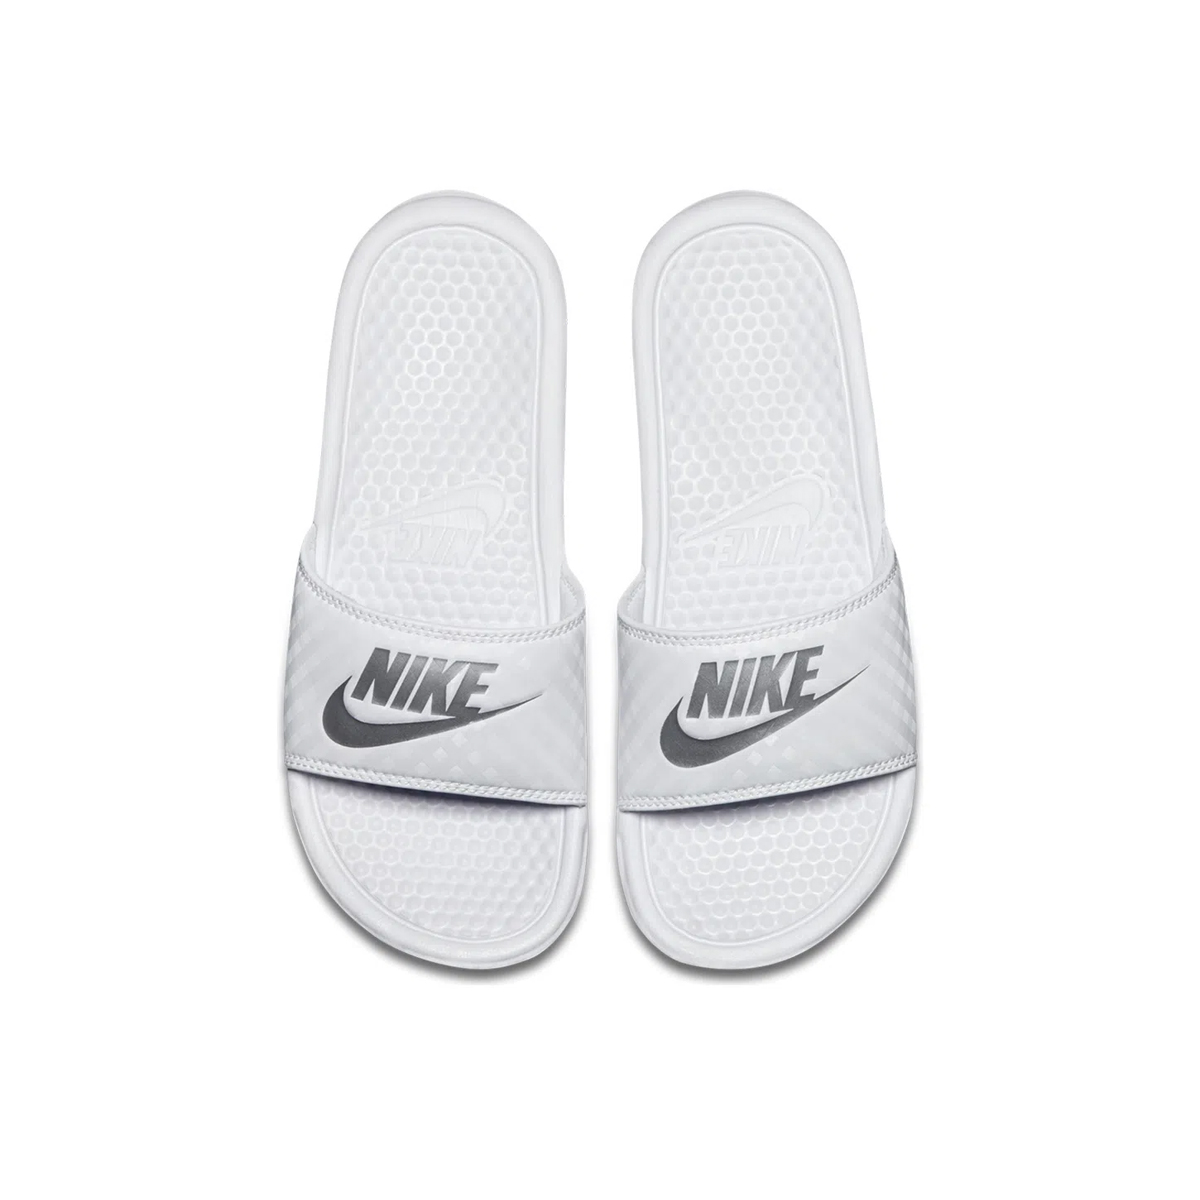 Ojotas Nike Benassi Just Do It,  image number null